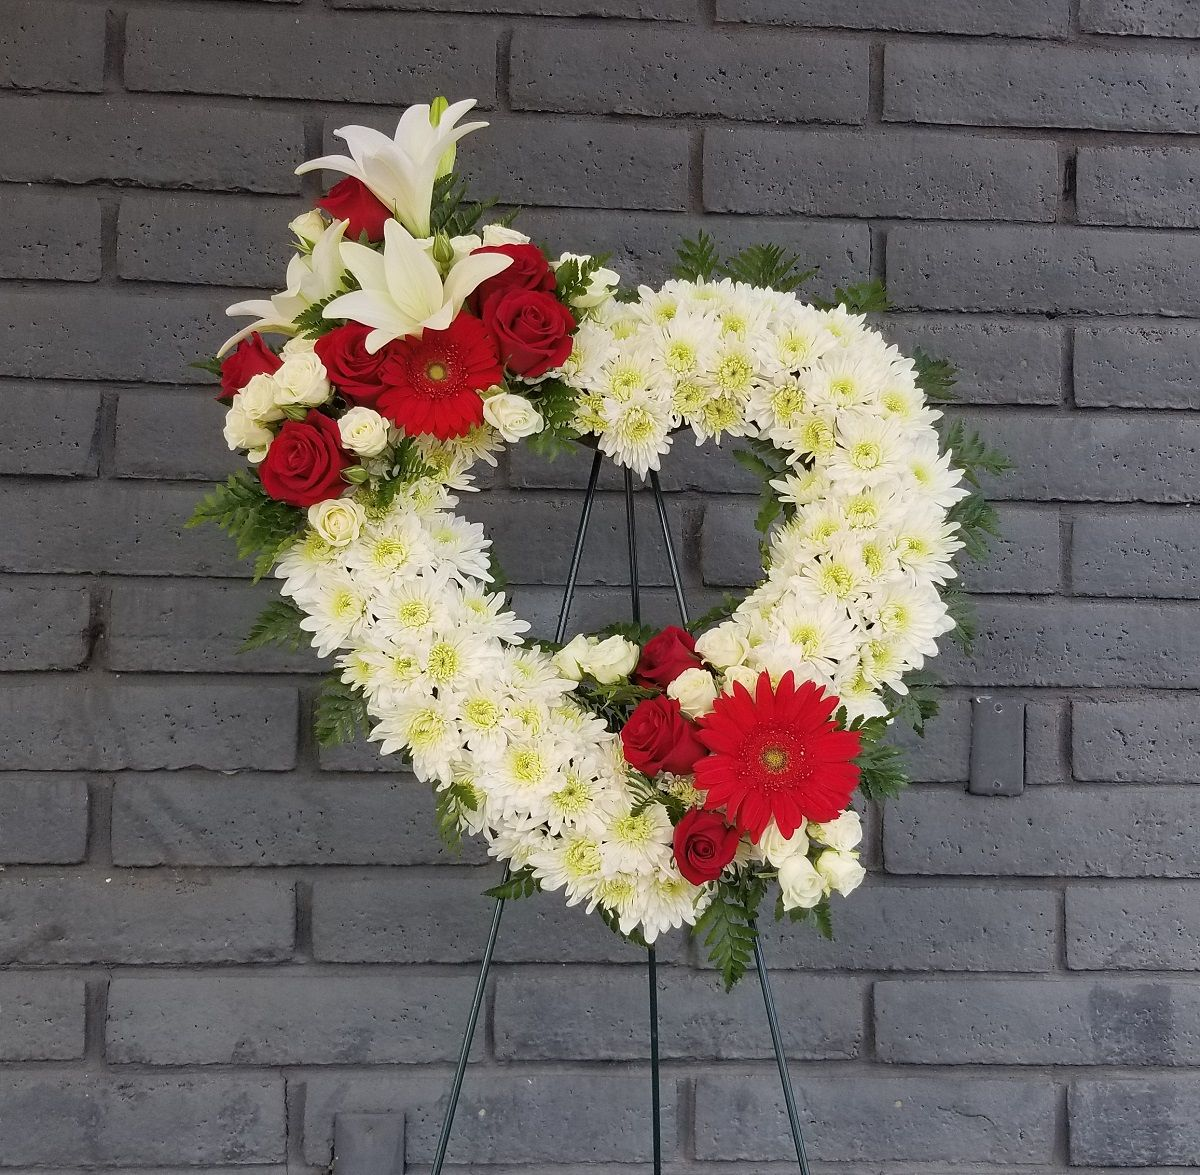 Keizer salem keizer florist remember you can always depend on our staff to help you choose sympathy or funeral flowers for a friend or loved one izmirmasajfo